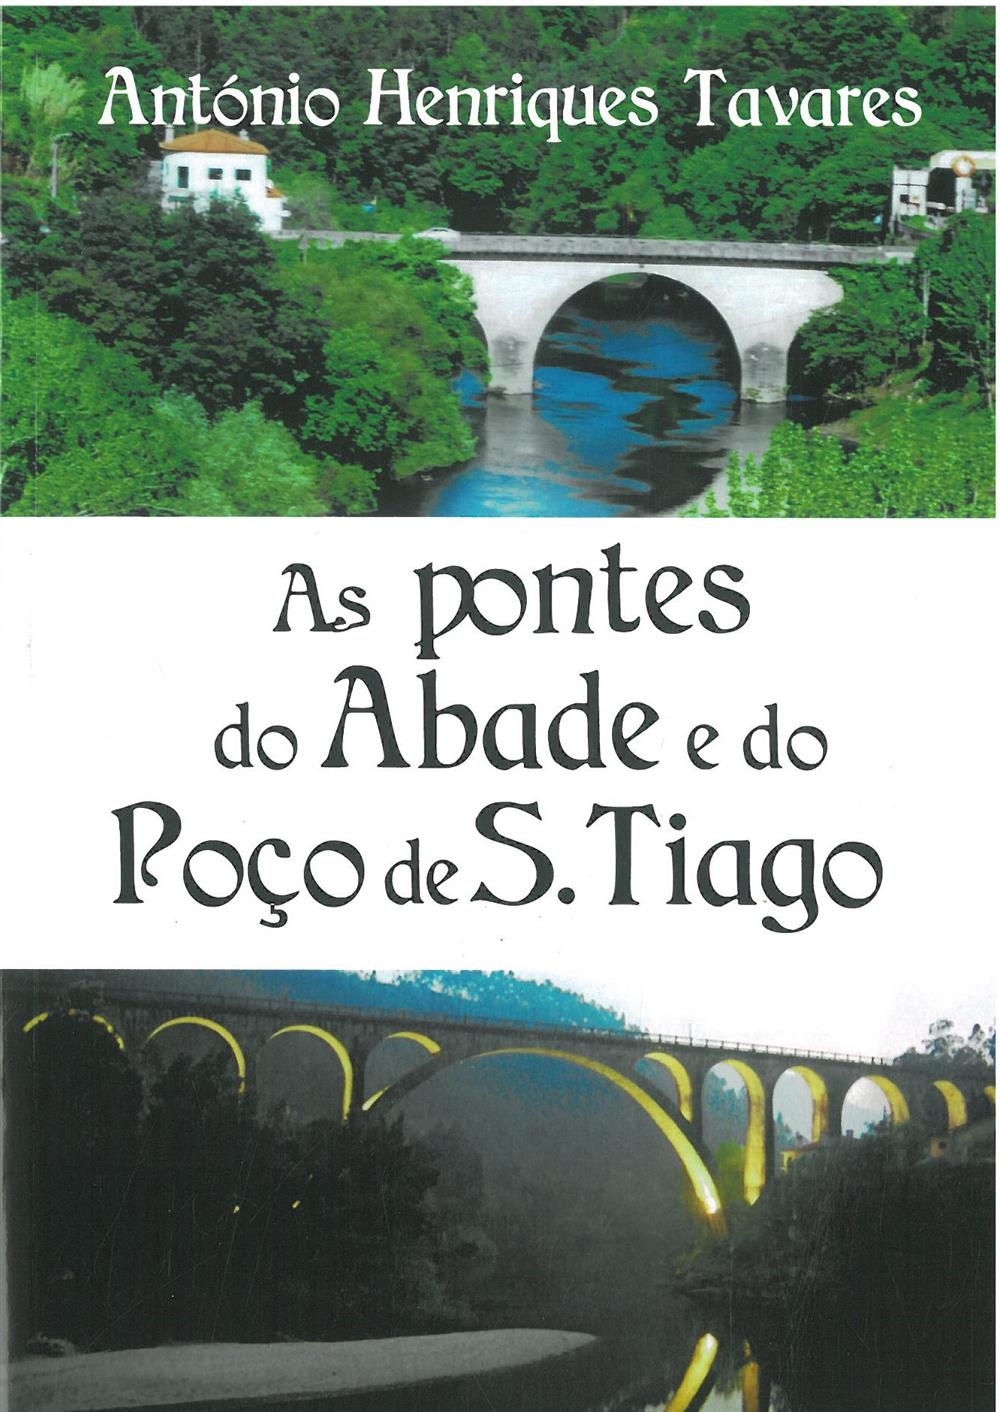 As pontes do Abade e do Poço de S. Tiago.jpg